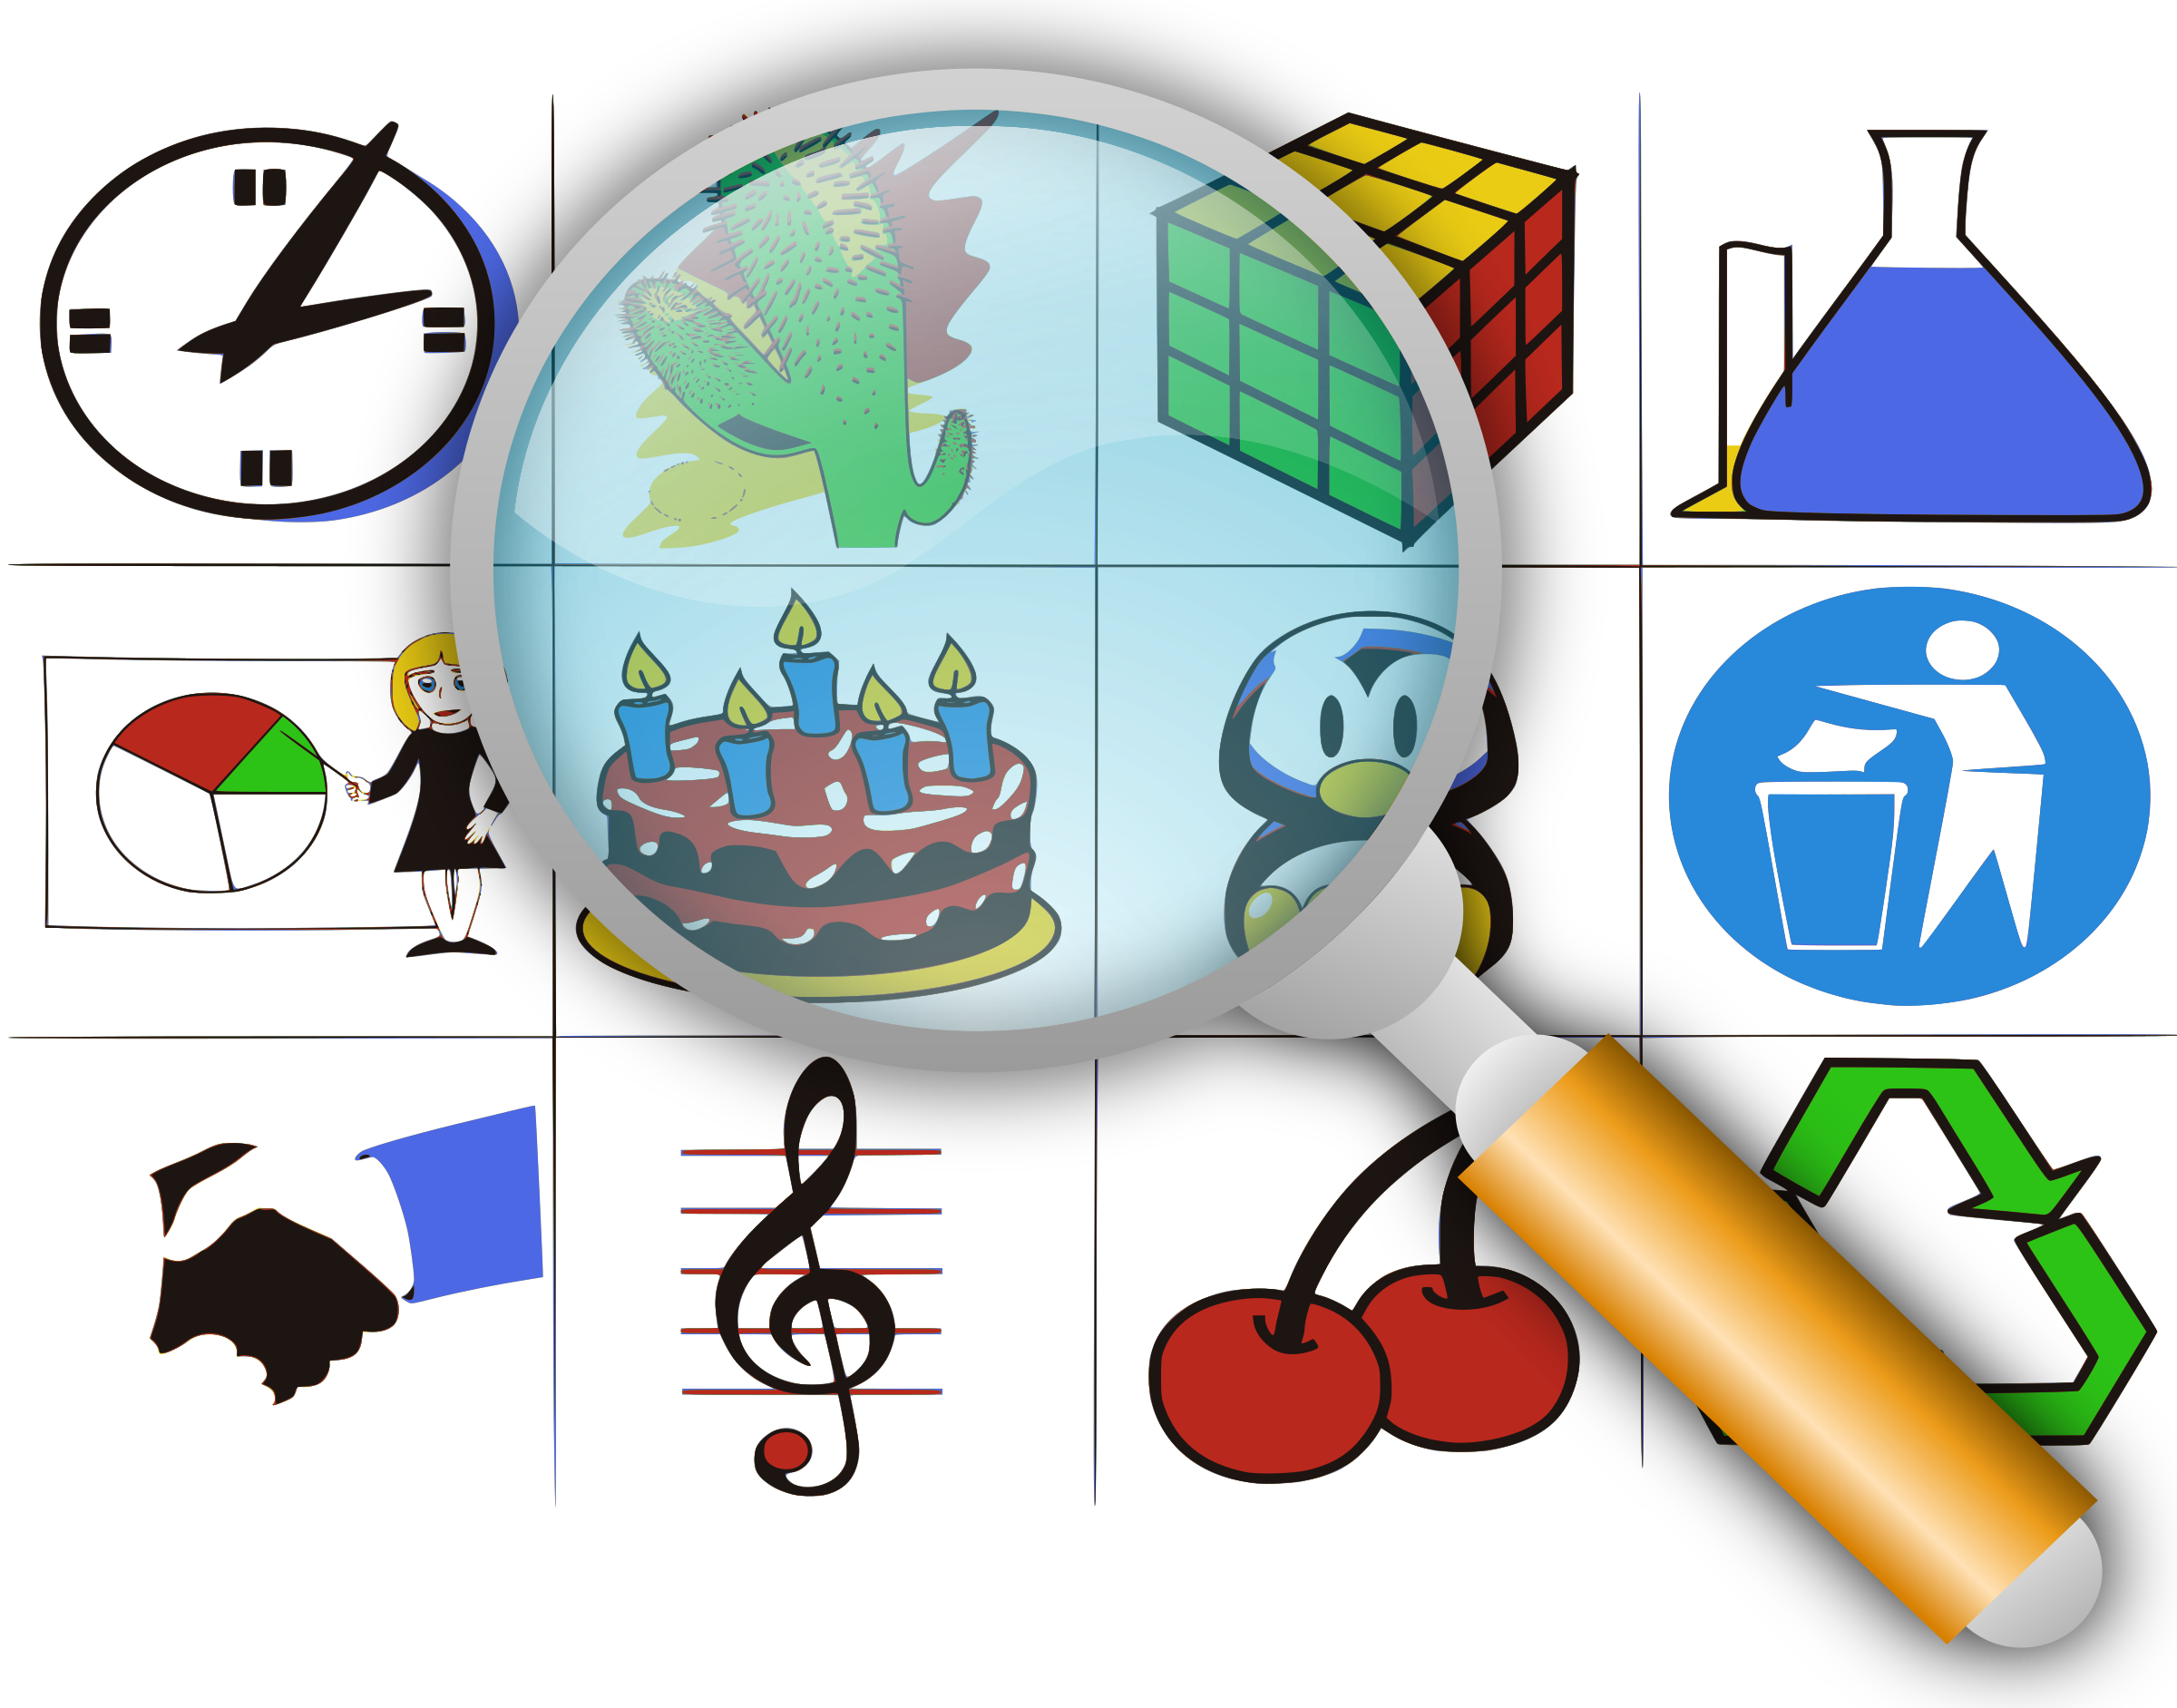 Iclipart search image library Clipart search - ClipartFest image library